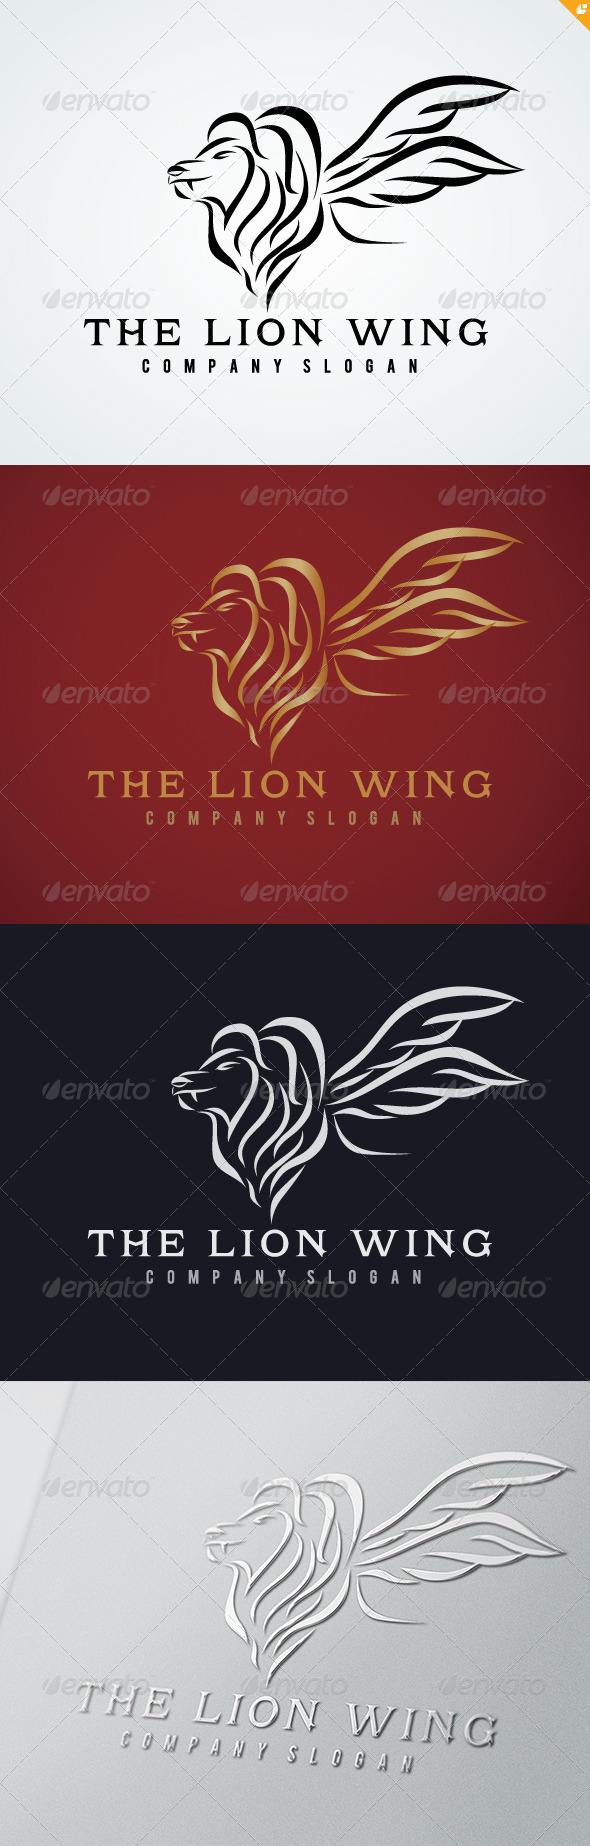 The Lion Wing Logo - Crests Logo Templates